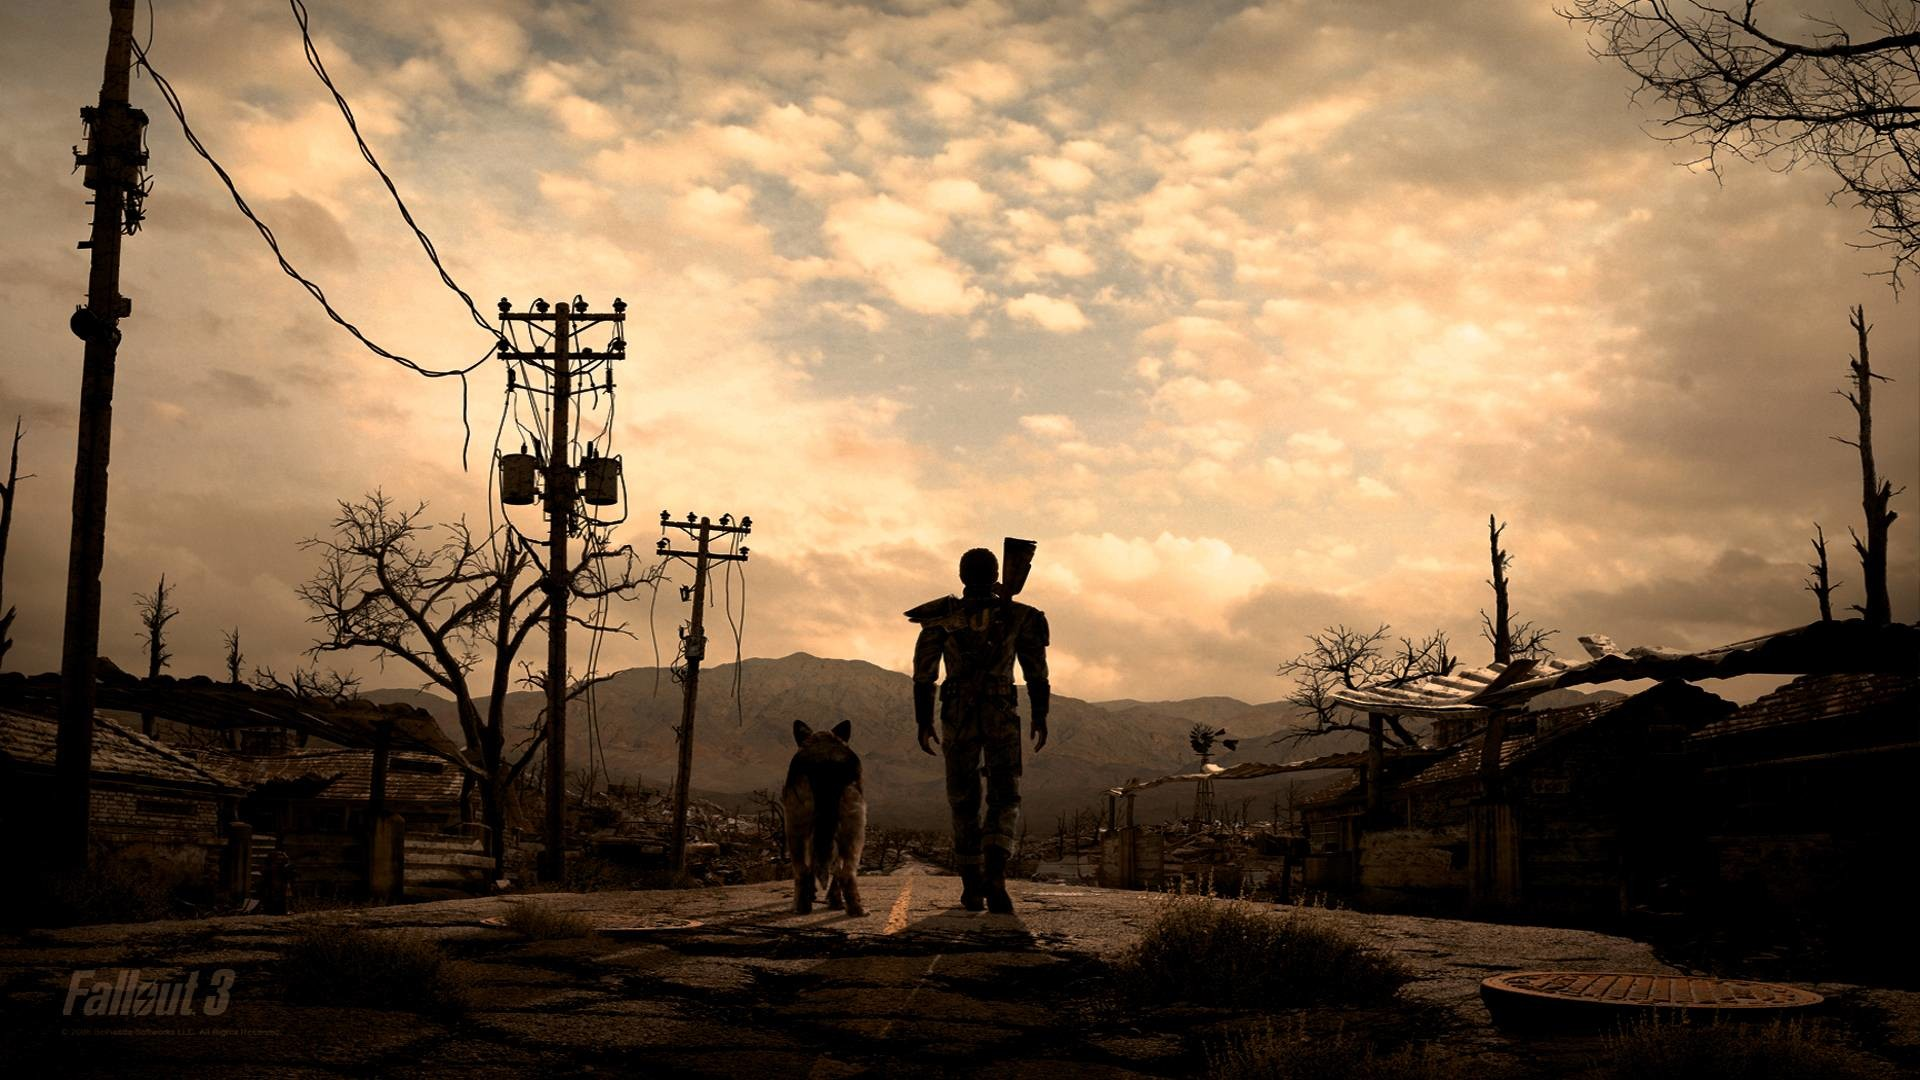 1920x1080 Pix For > Fallout 3 Fan Art Wallpaper